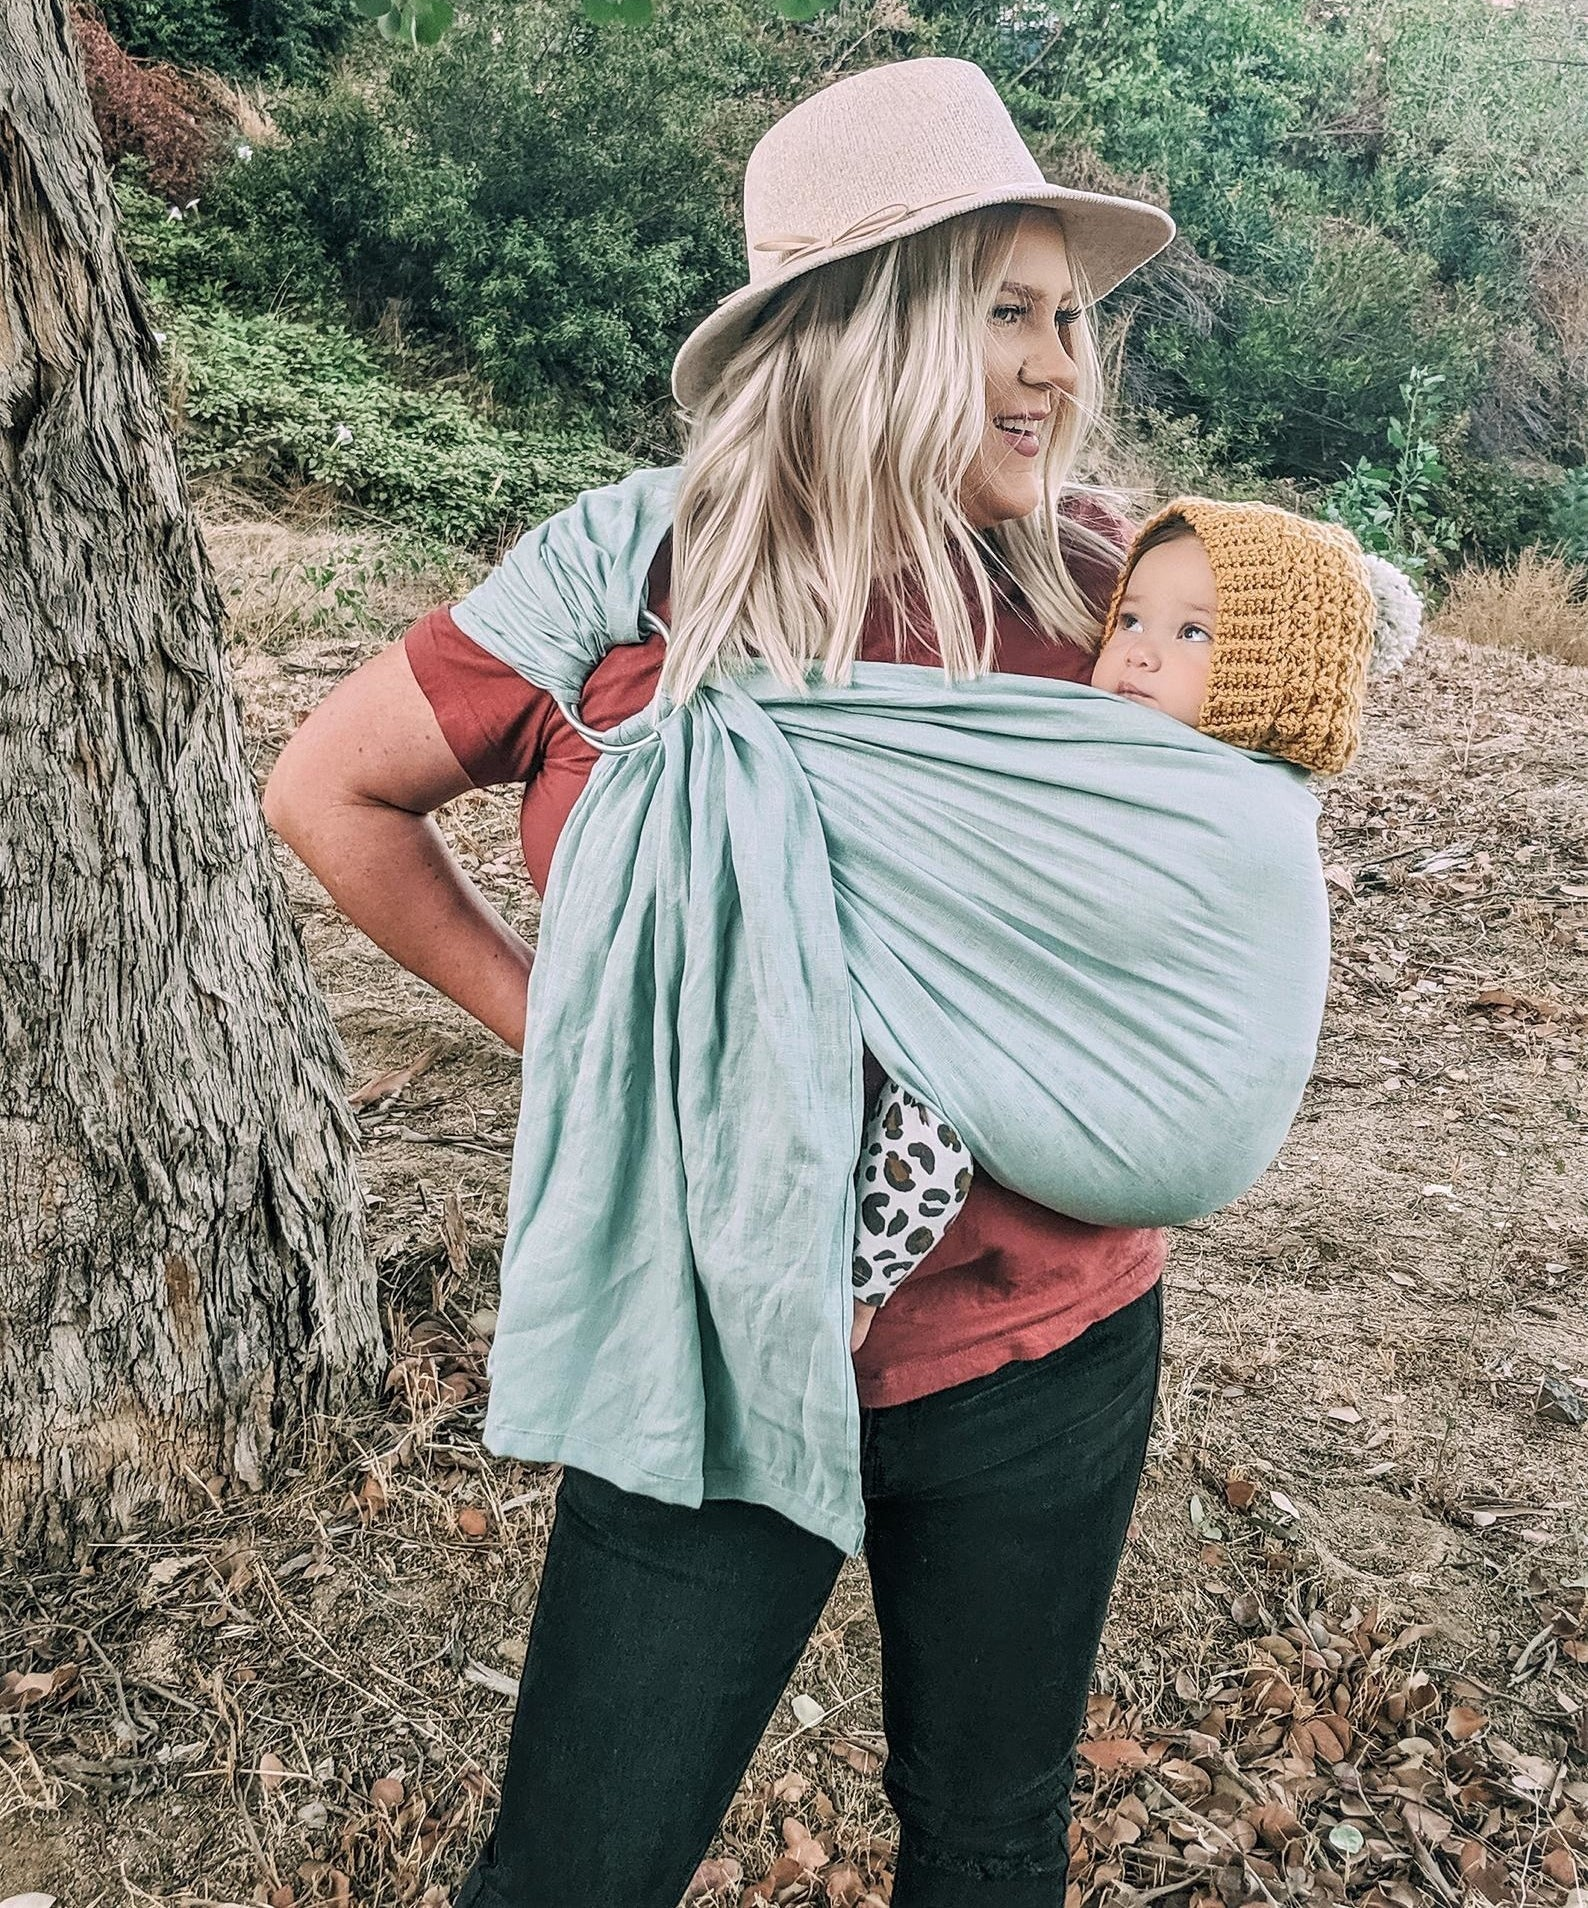 A parent carrying their child in a cool mint colored baby carrier